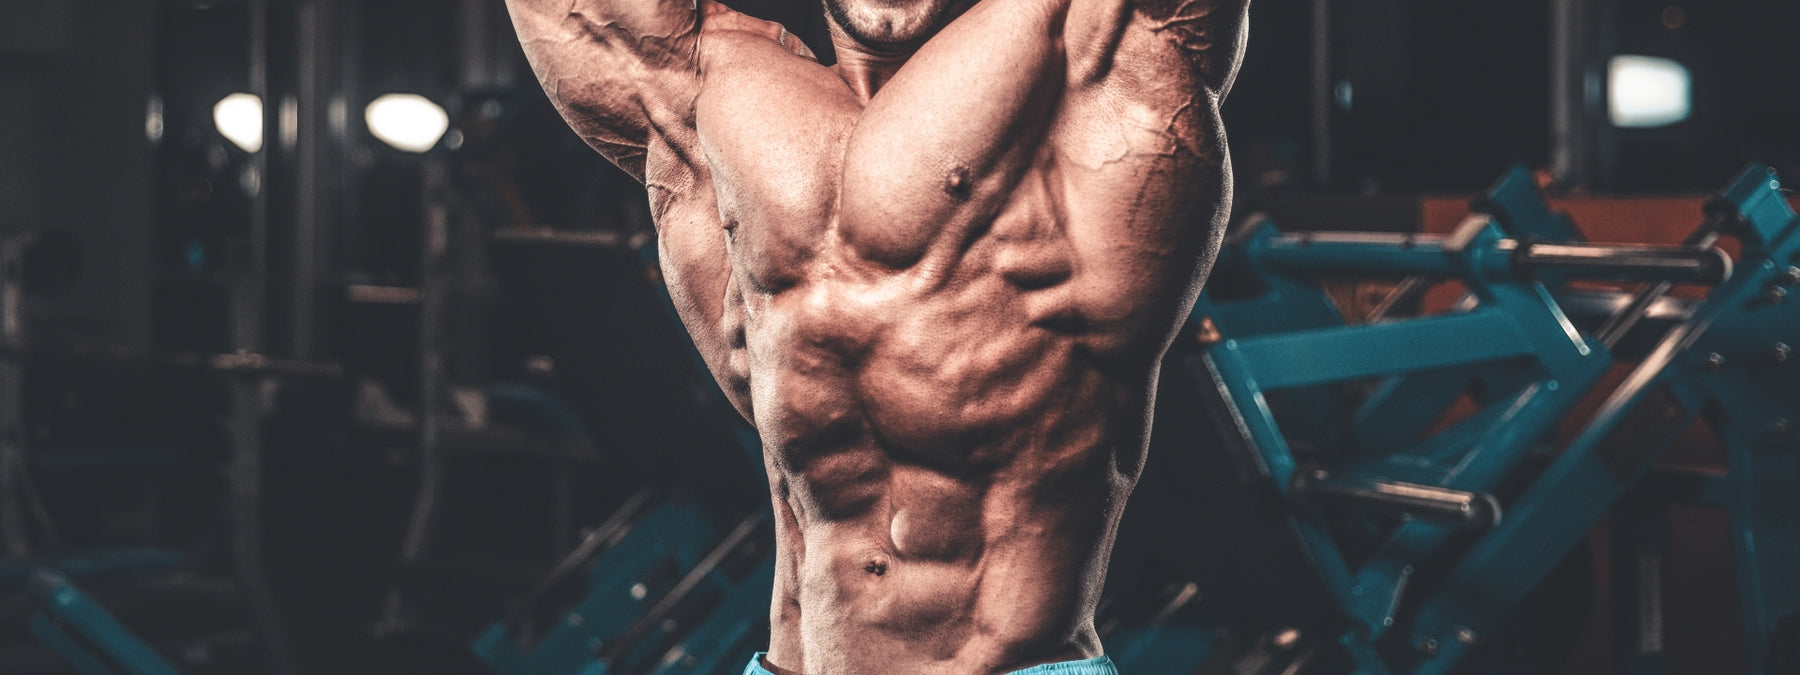 Oblique Workout - Best Exercises and Optimal Training